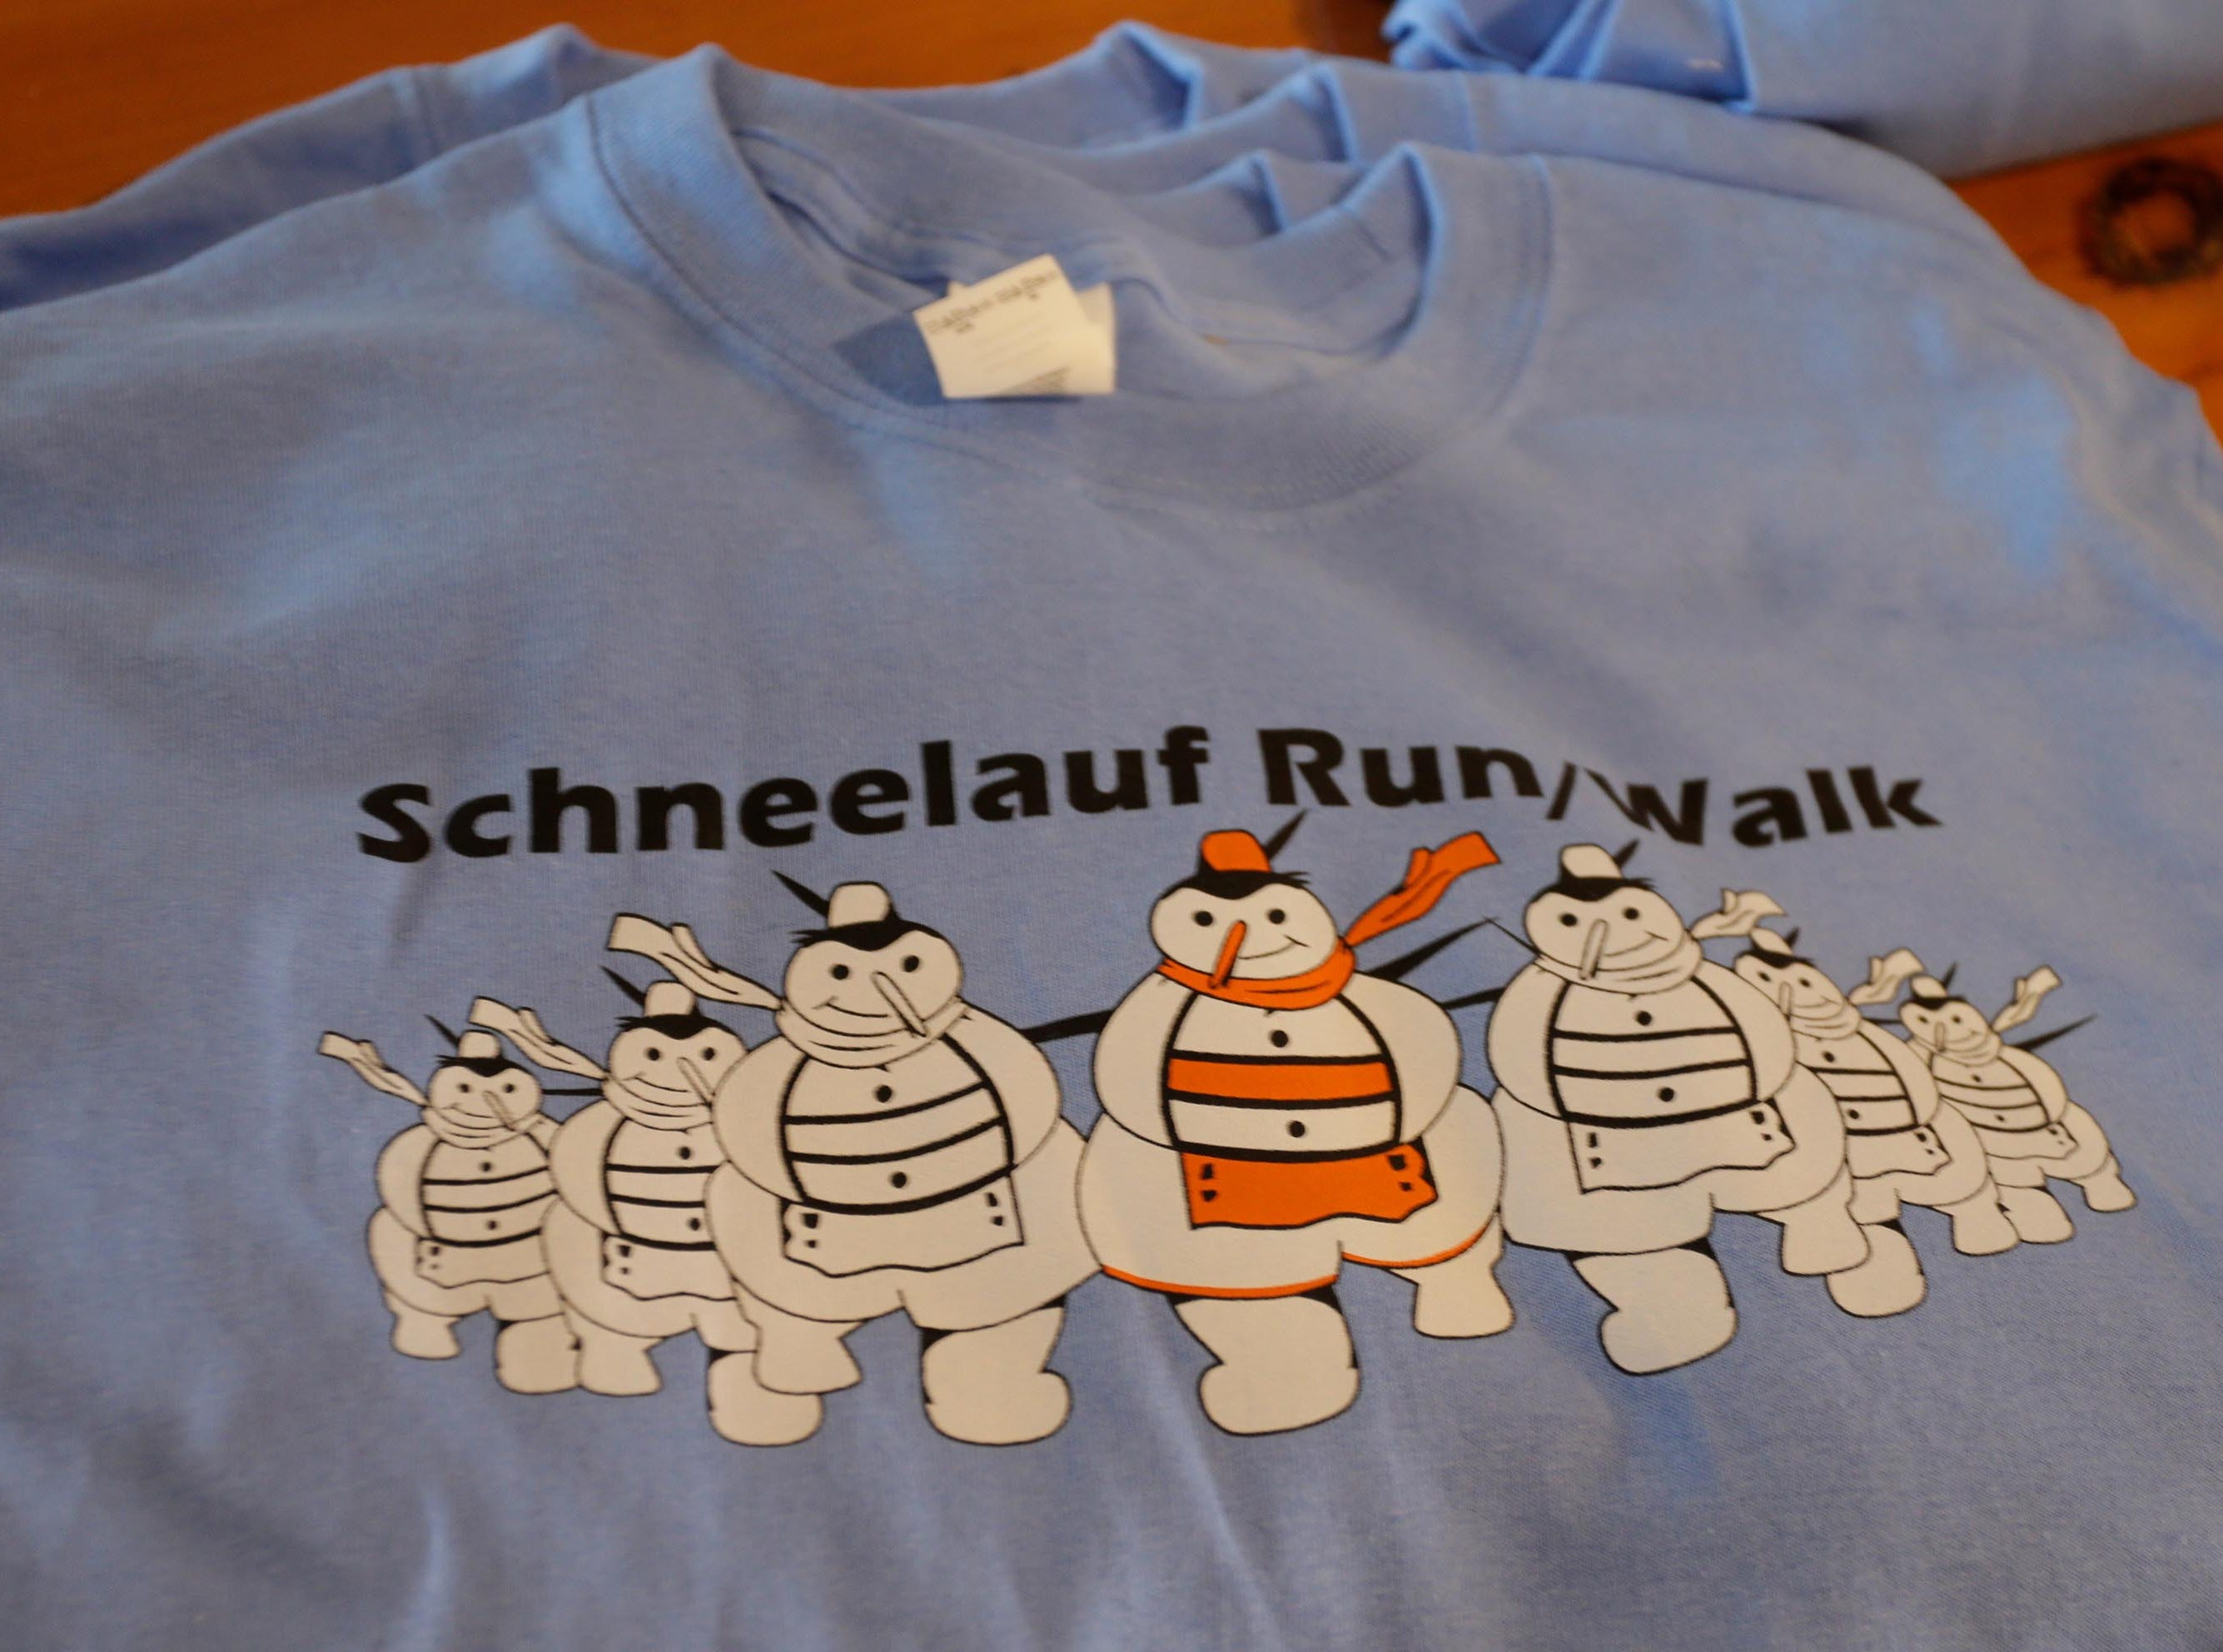 A commemorative piece of clothing on display and for sale at the Schneelauf Run, Saturday, January 26, 2019, in Elkhart Lake, Wis.